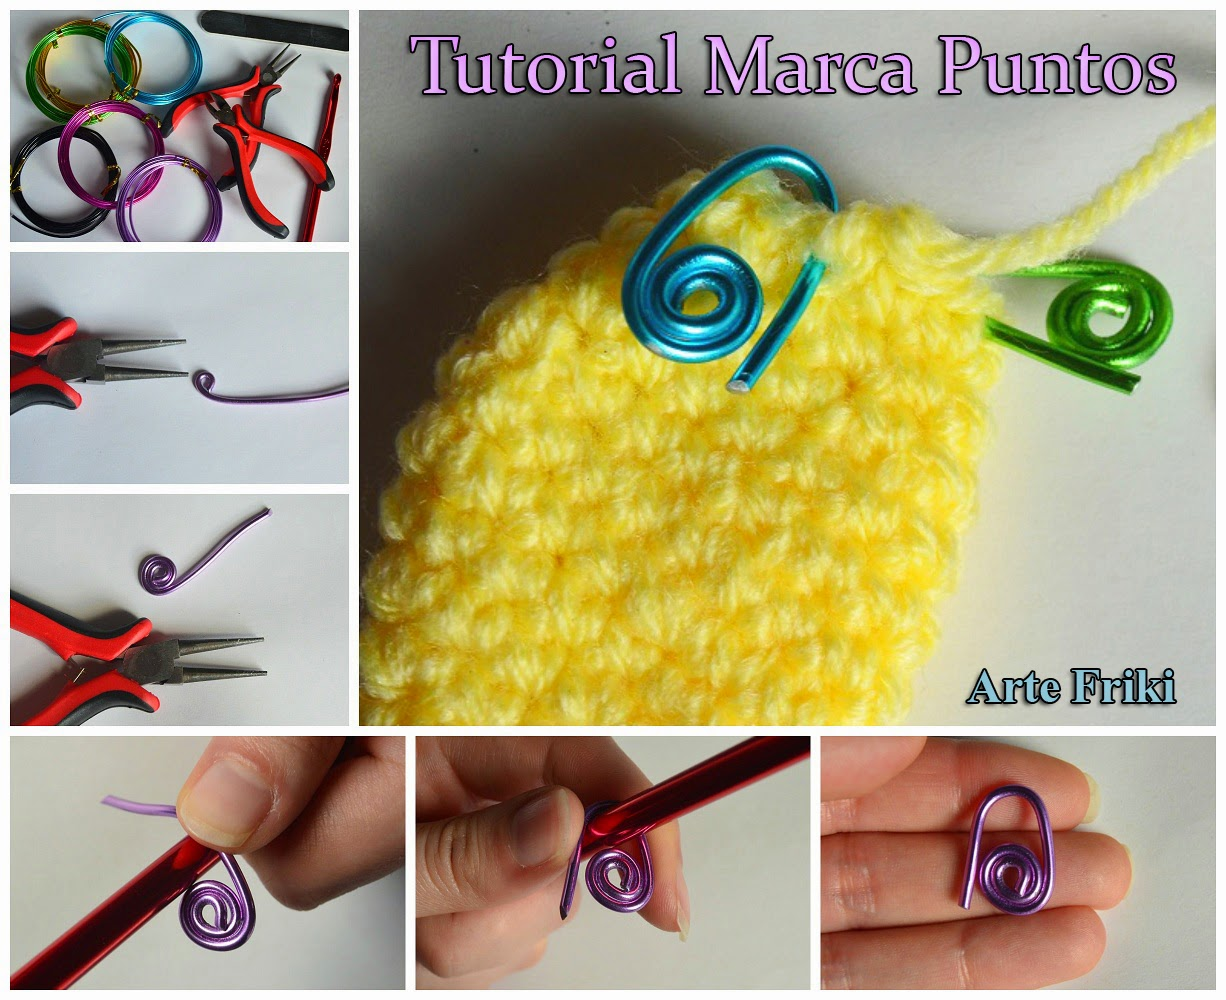 marca puntos crochet ganchillo tutorial how to make sticht marker paso a paso como hacer marcador puntos diy amigurumi